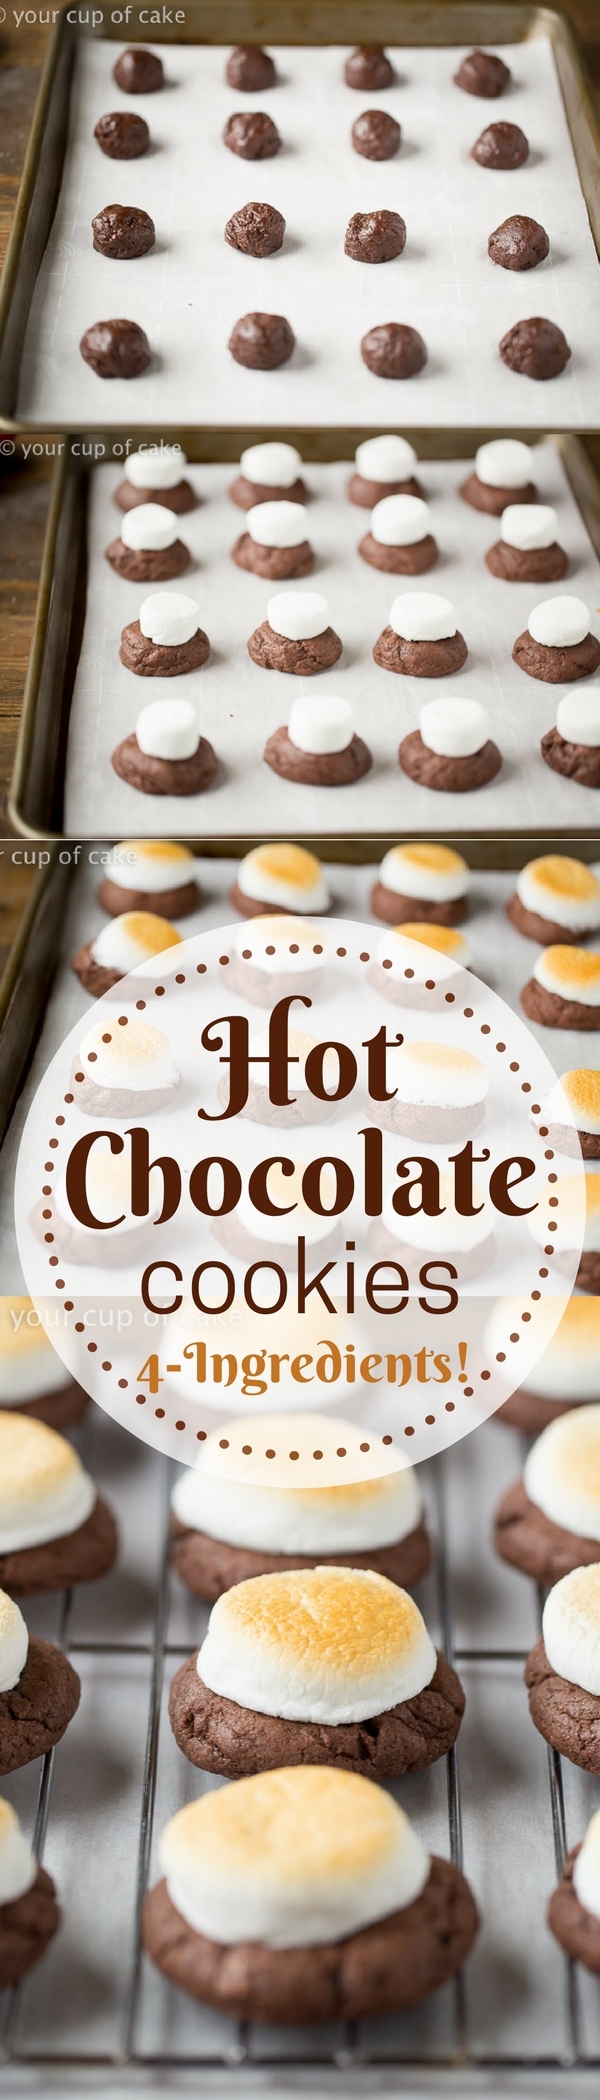 Hot Chocolate Cookies only take 4 Ingredients to make! LOVE the toasted marshmallows on top!